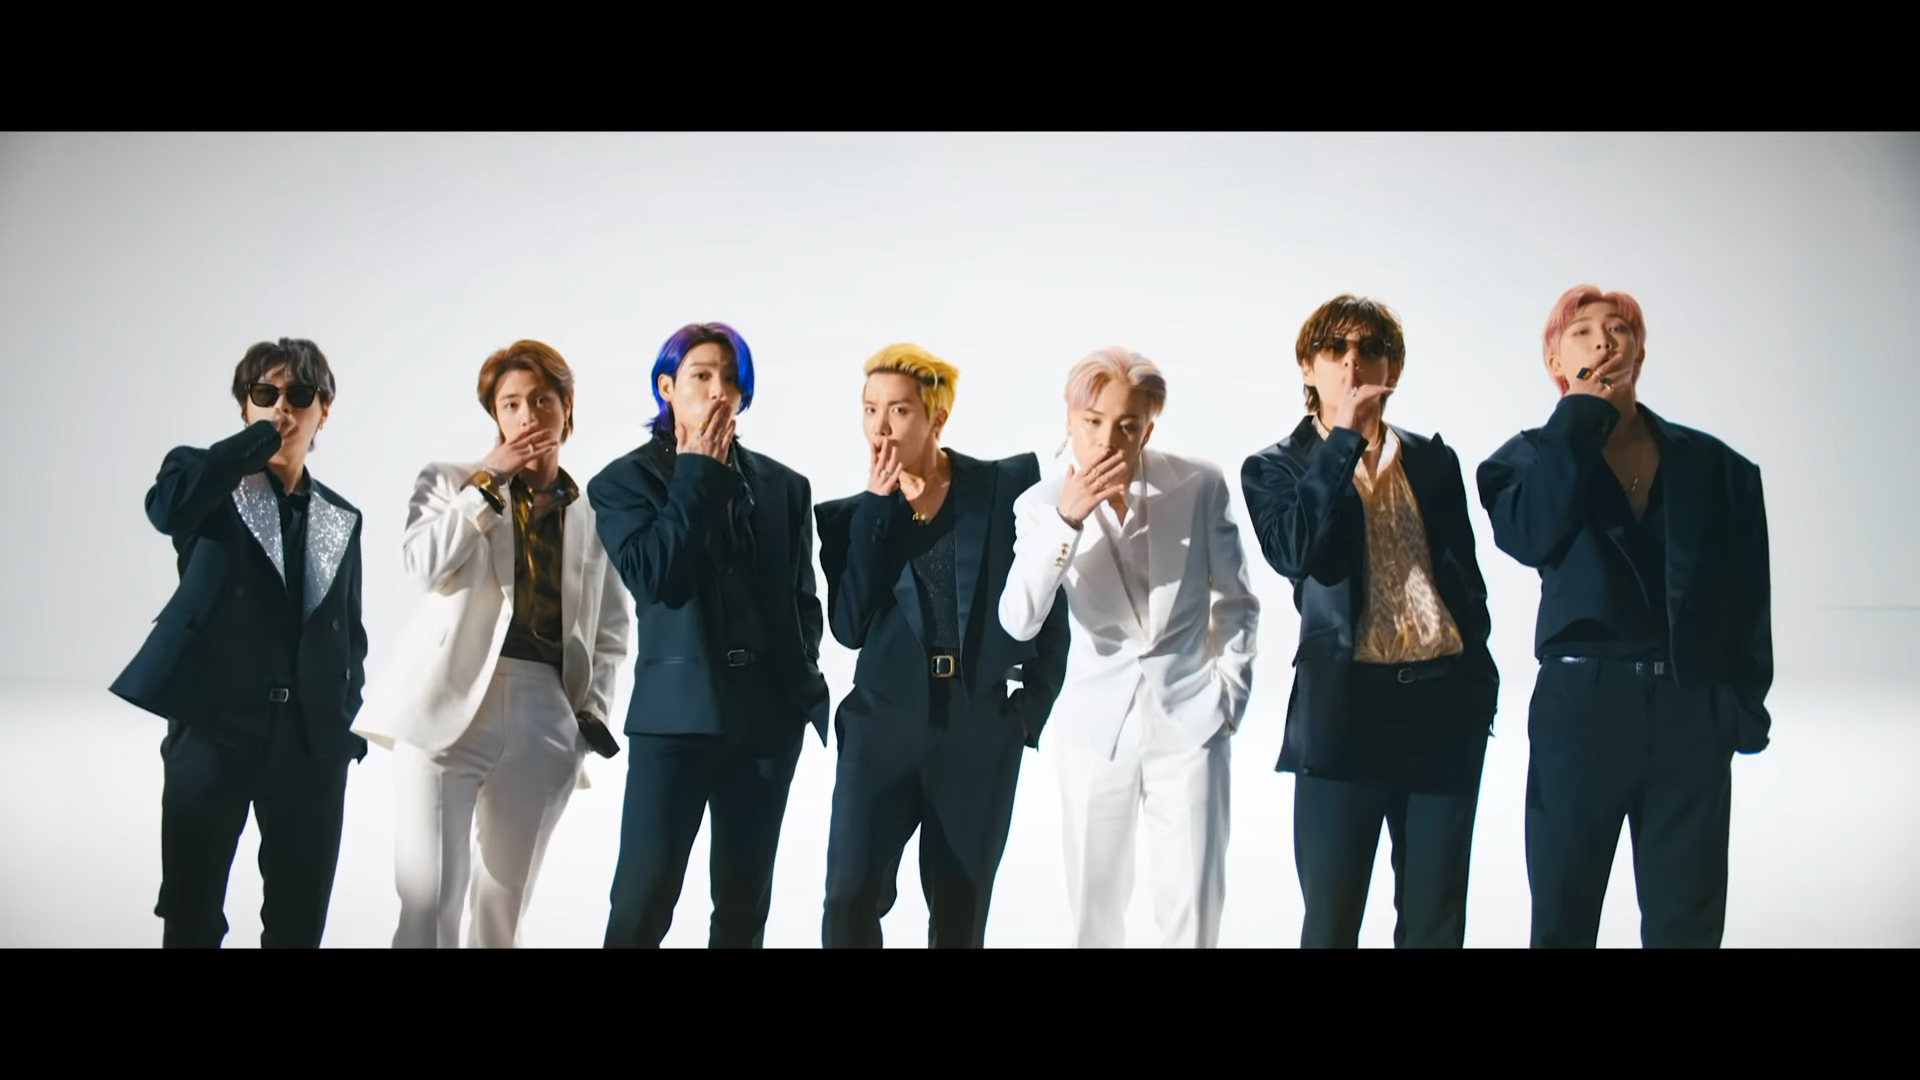 BTS Butter who's who